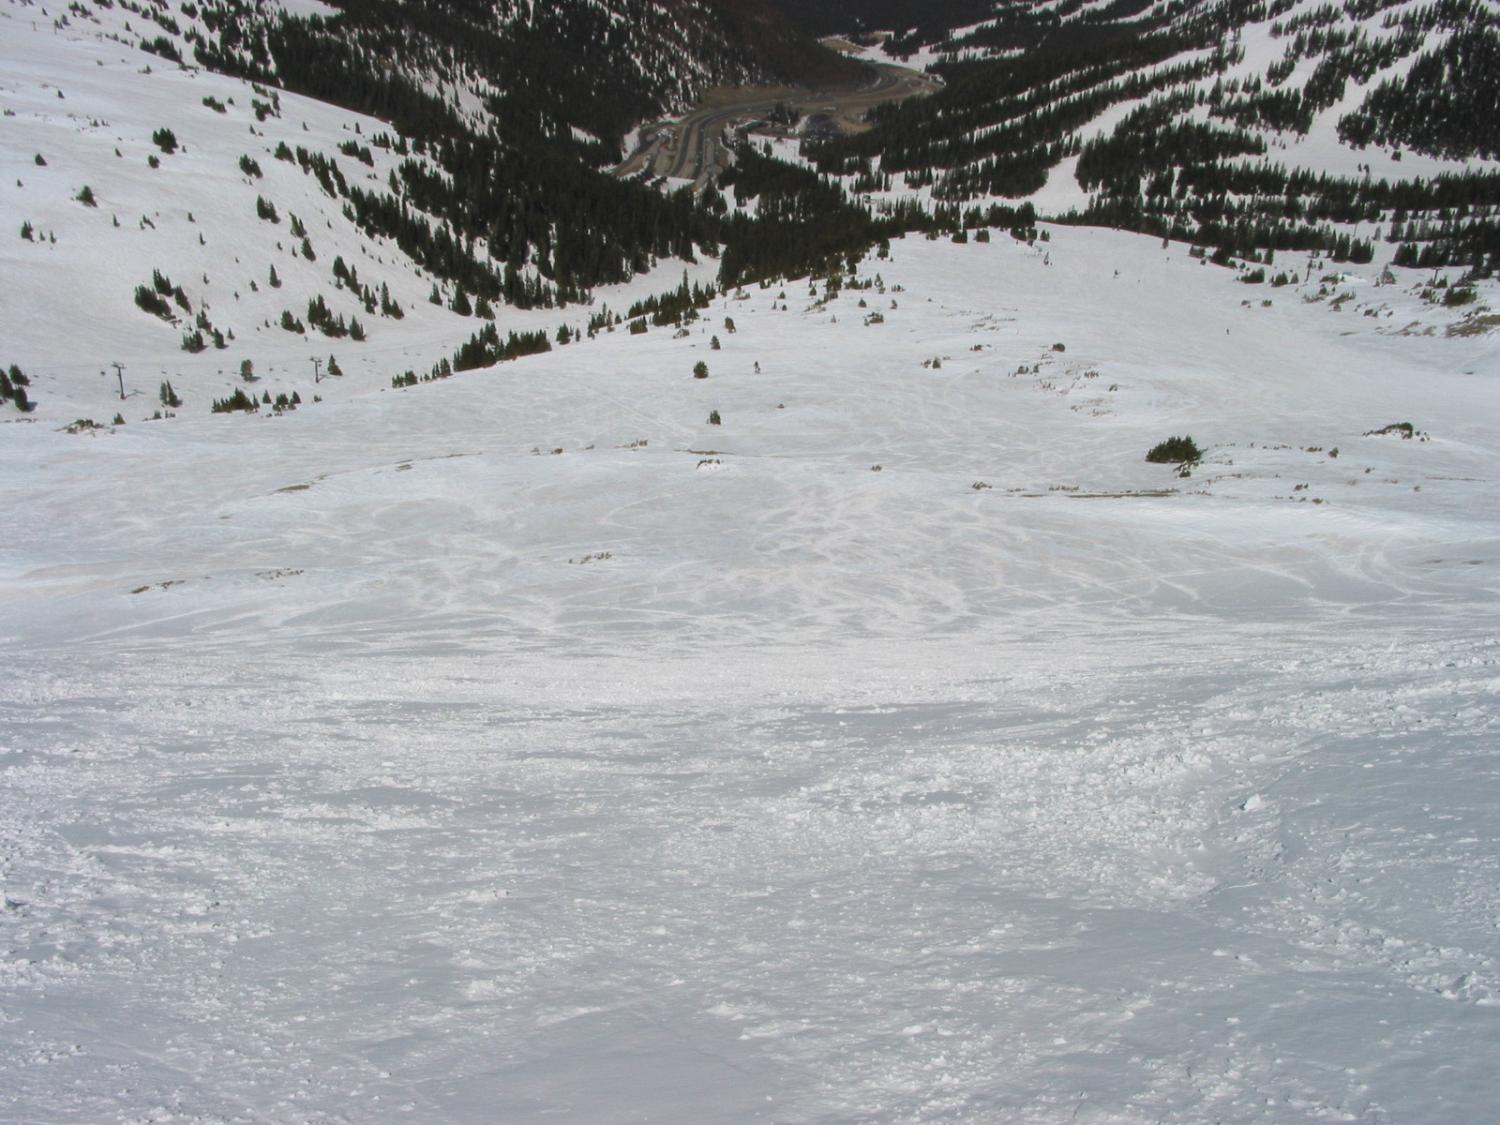 Jelly Roll Ski Trail looking at the bottom of Lift 9